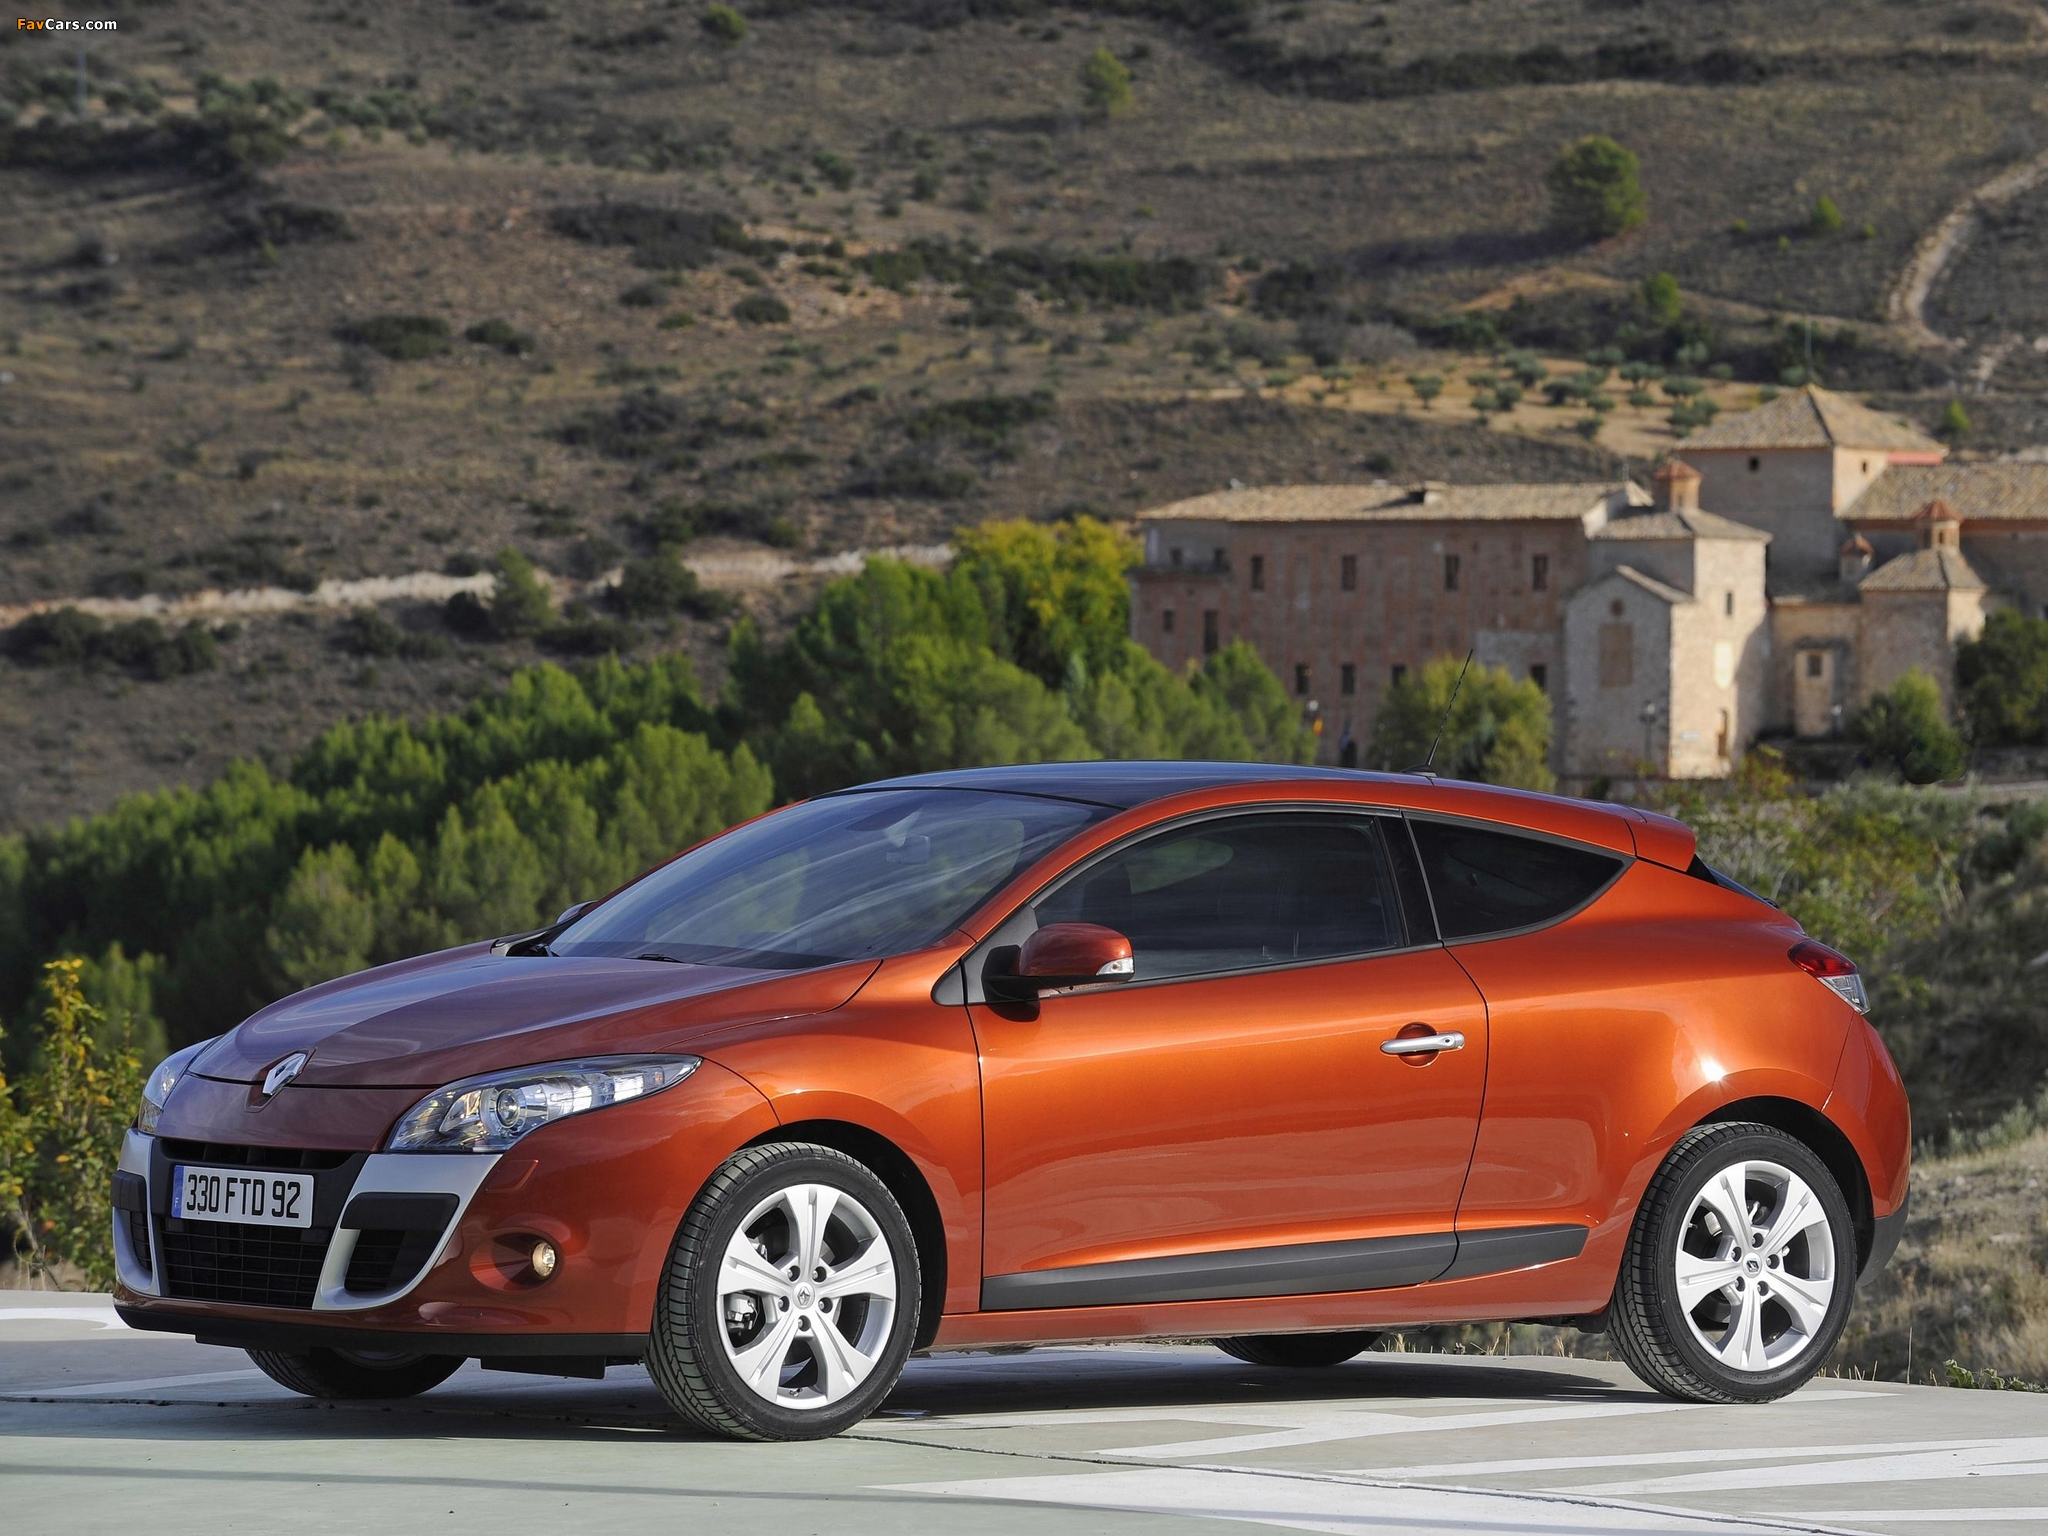 Renault Megane Coupe 2009 wallpapers (2048 x 1536)